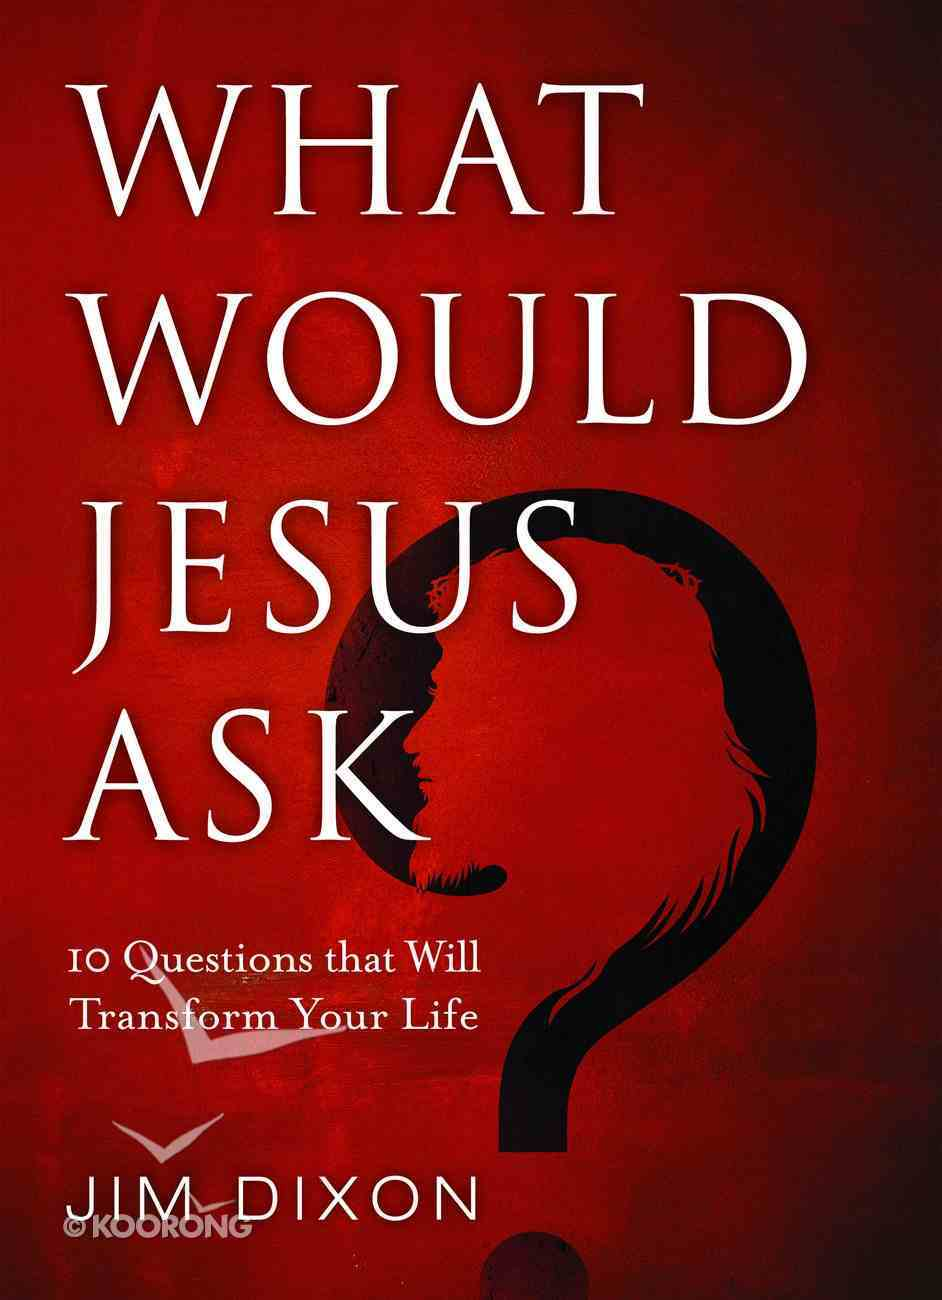 What Would Jesus Ask? Paperback